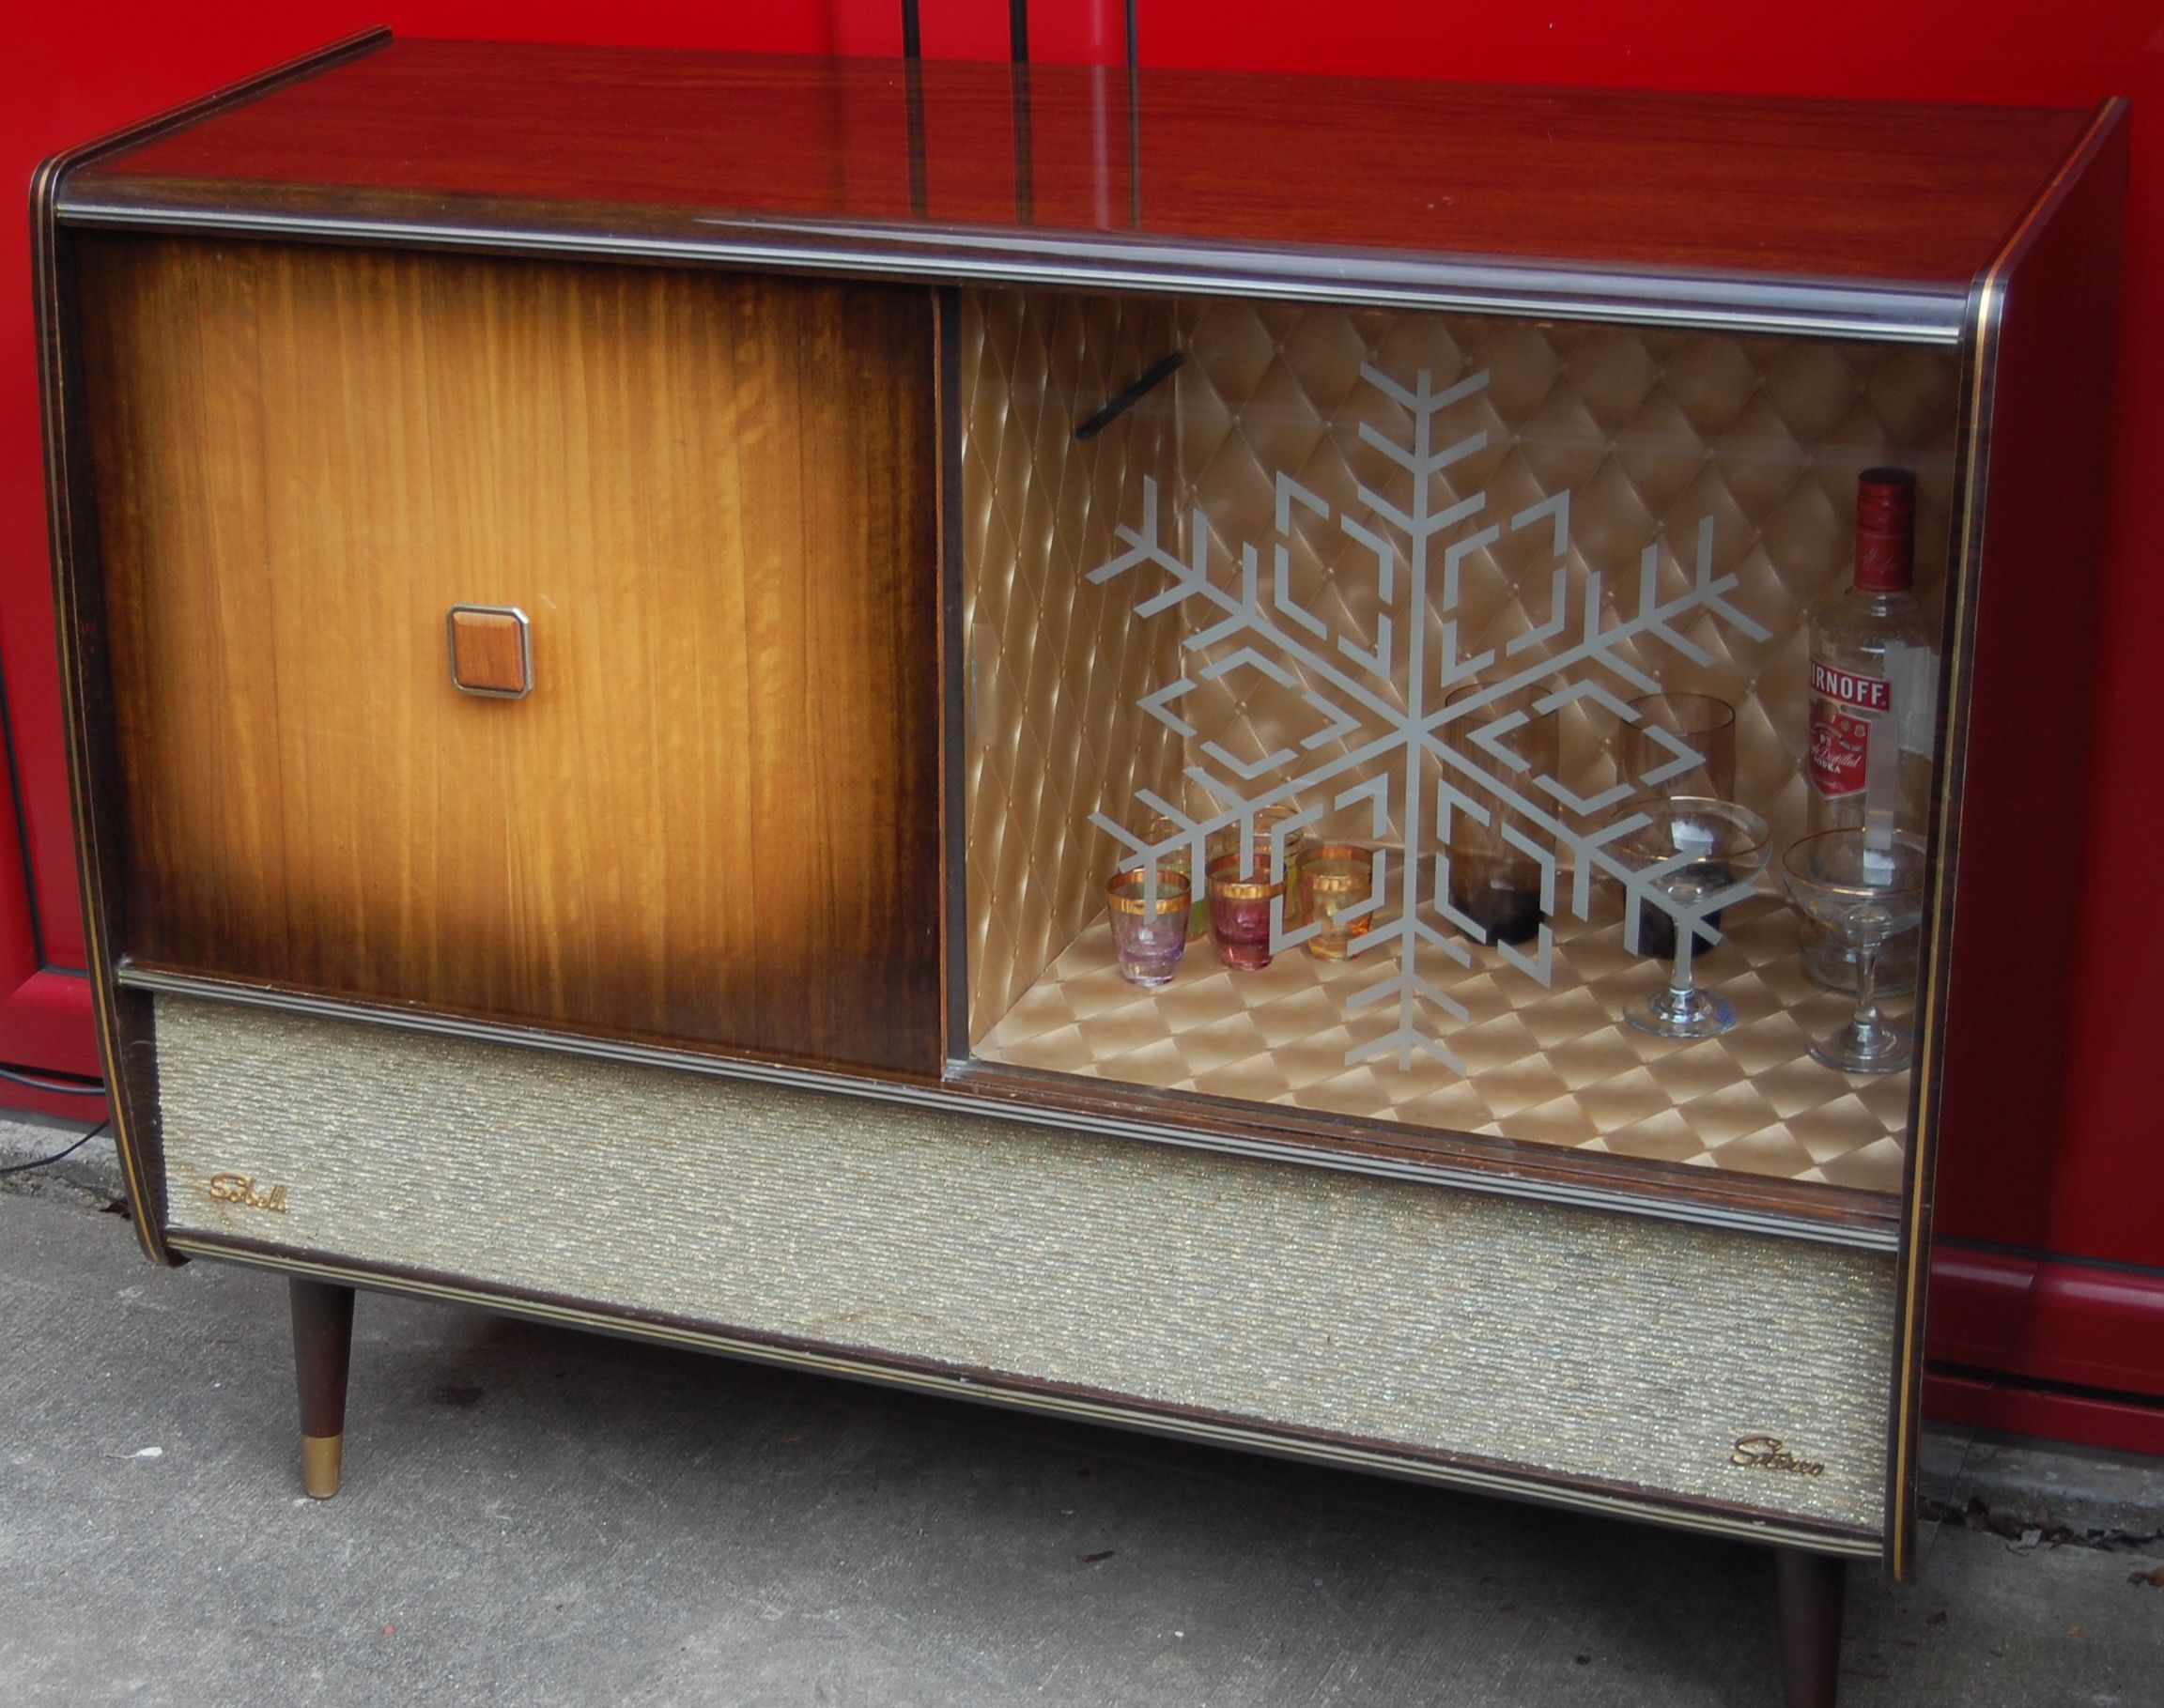 Fully Restored 1950s Vintage Sobell Sg678 Valve Radiogram With Cocktail Bar Mp3 Compatible Dingser